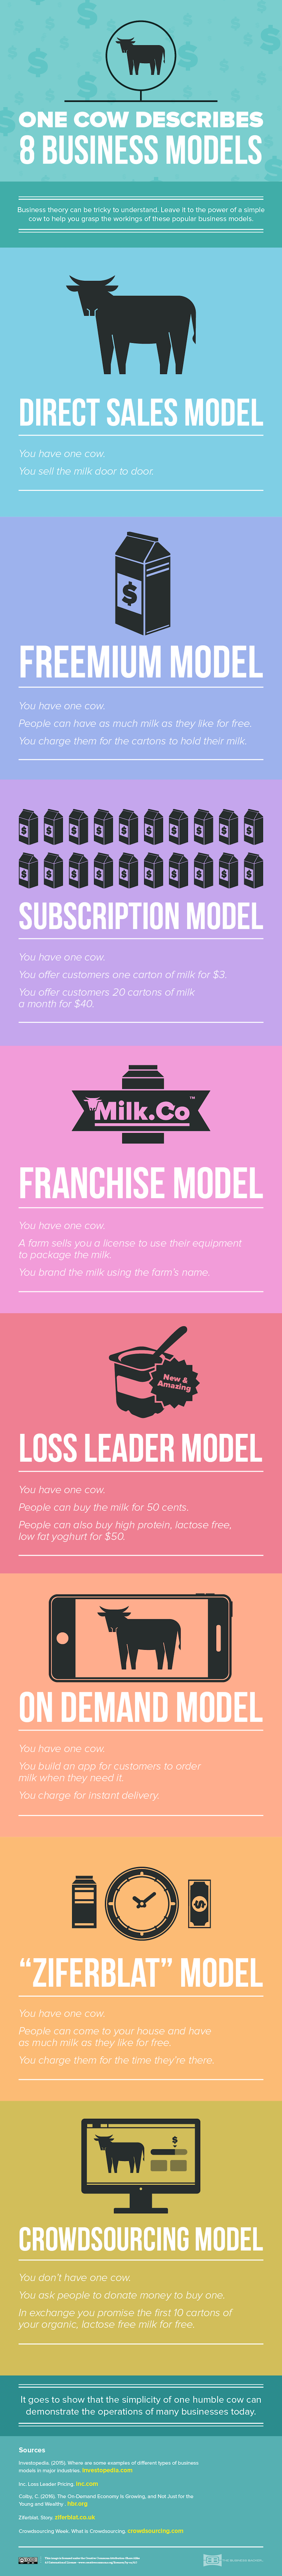 One Cow Describes 8 business models #Infographic